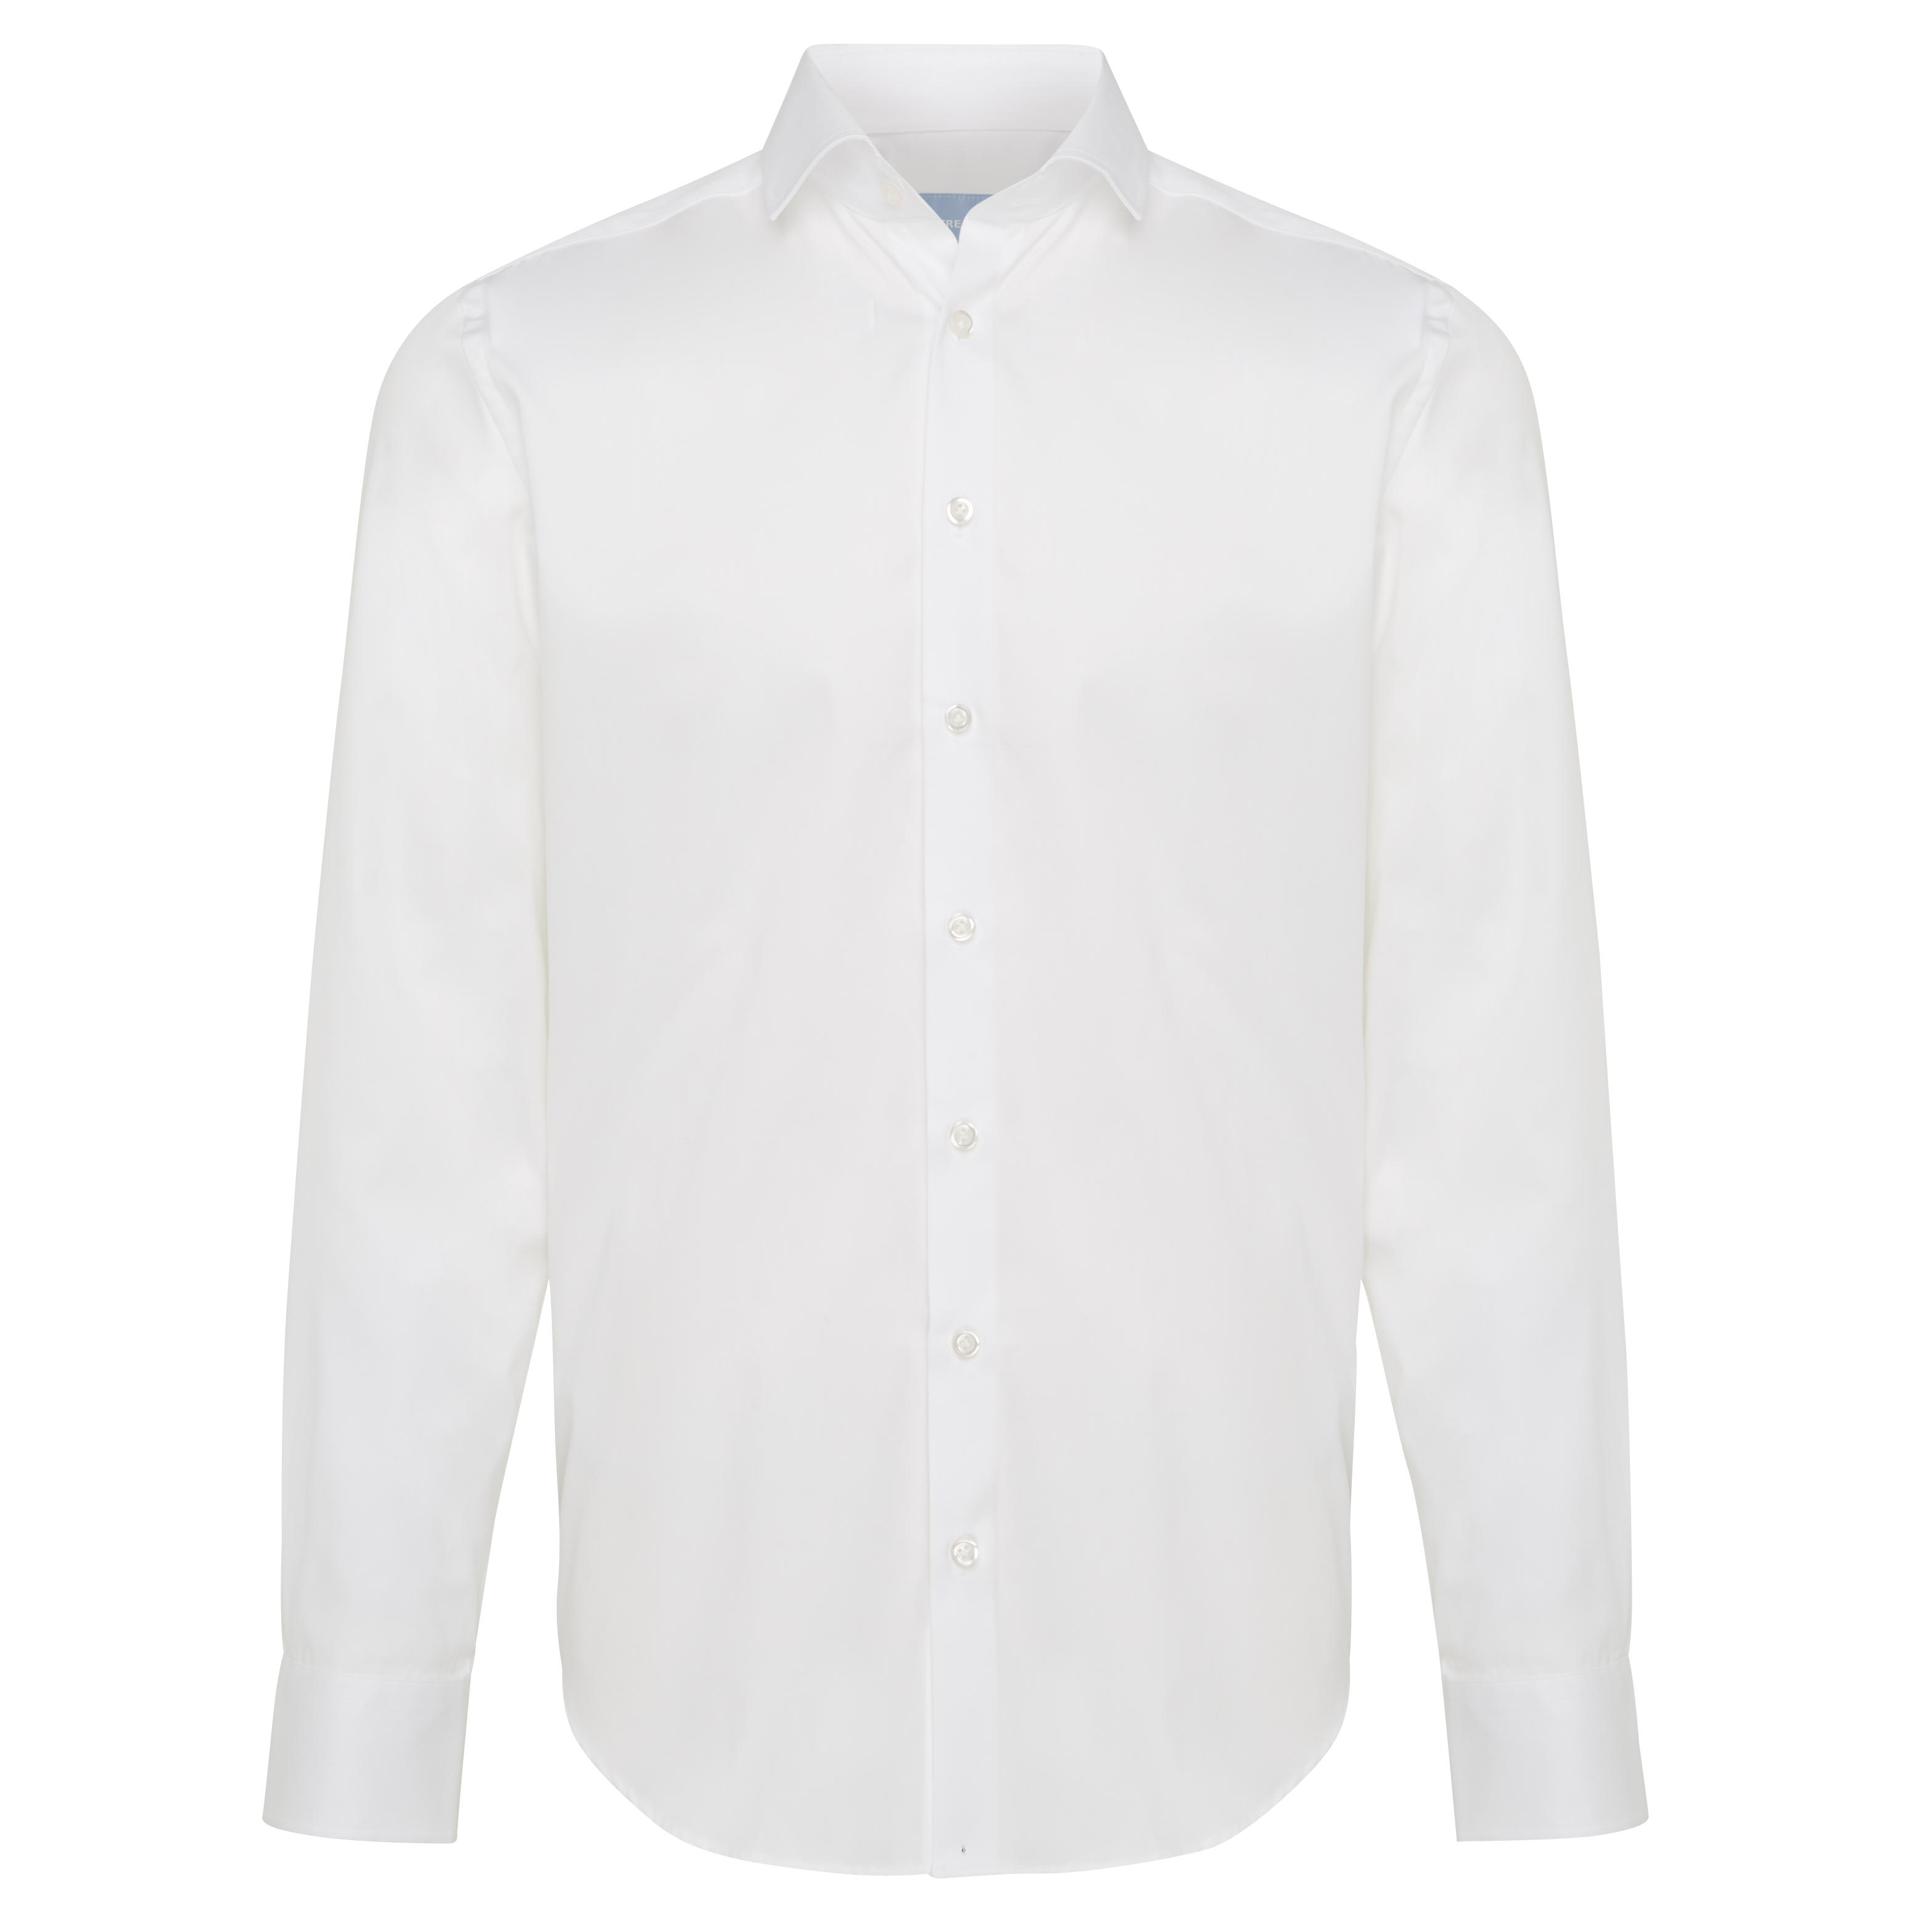 Non-iron shirt plain white - Regular Fit